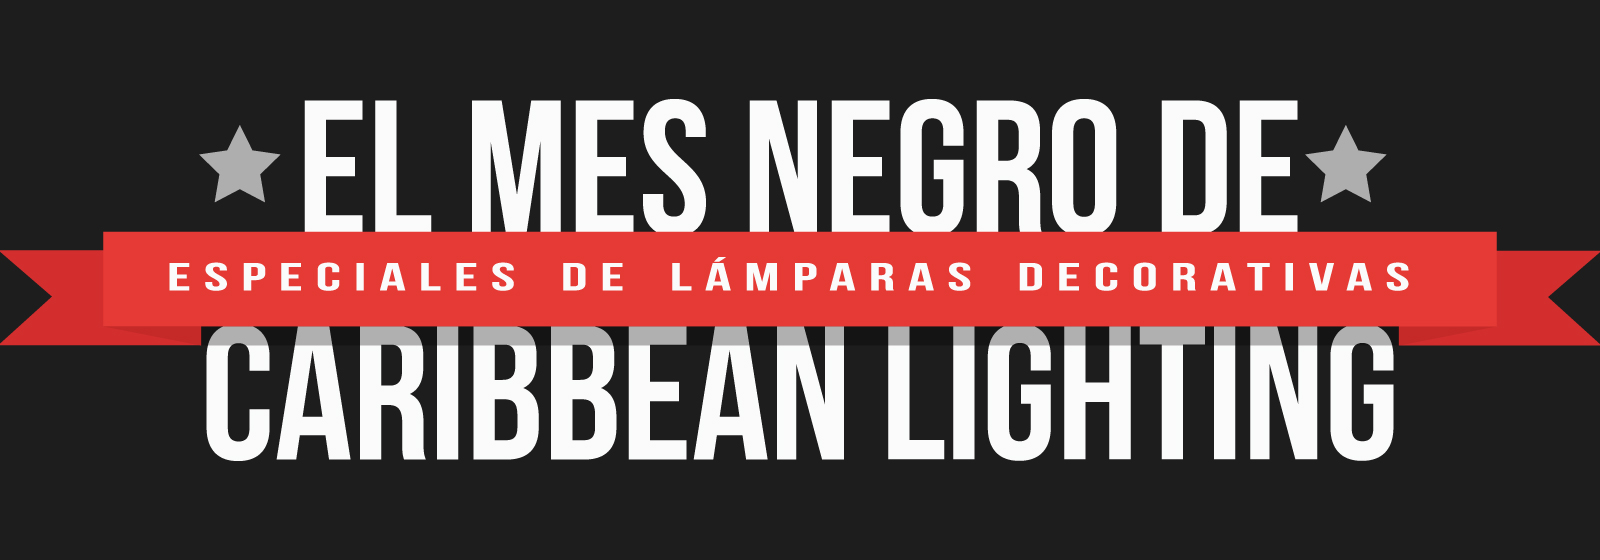 banner-mes-negro